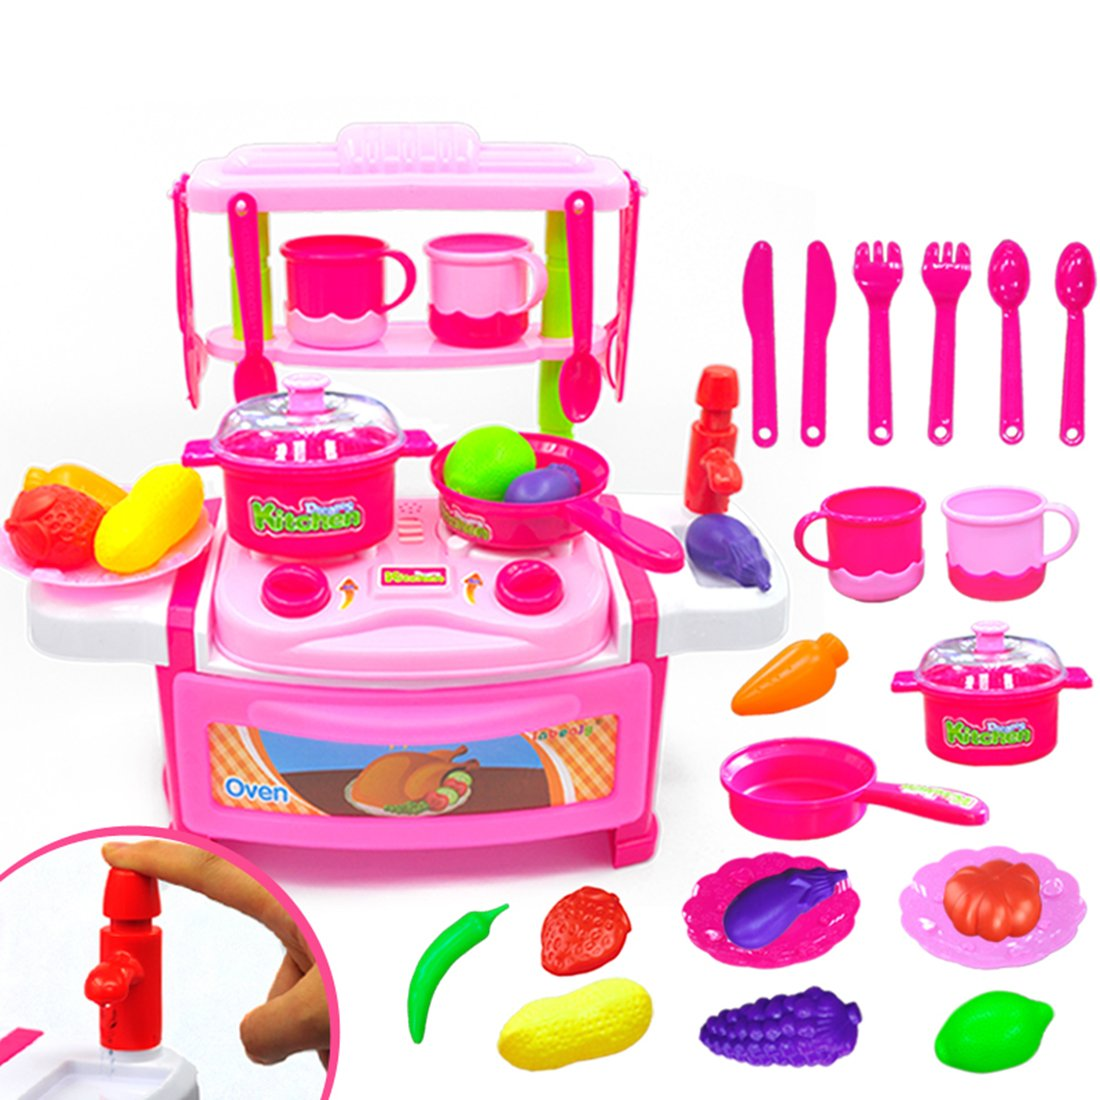 Kids Cooking Set Toys fcoson子料理調理器具Pretend Play Food詰め合わせセット23ピースキッチンキッチン用品セットwithサウンドandライト効果for Toddlersガールズボーイズベビー – ブルー/イエロー 23 pieces ピンク 5ZQ144335I7JKM633 23 pieces ピンク B075R4P34C